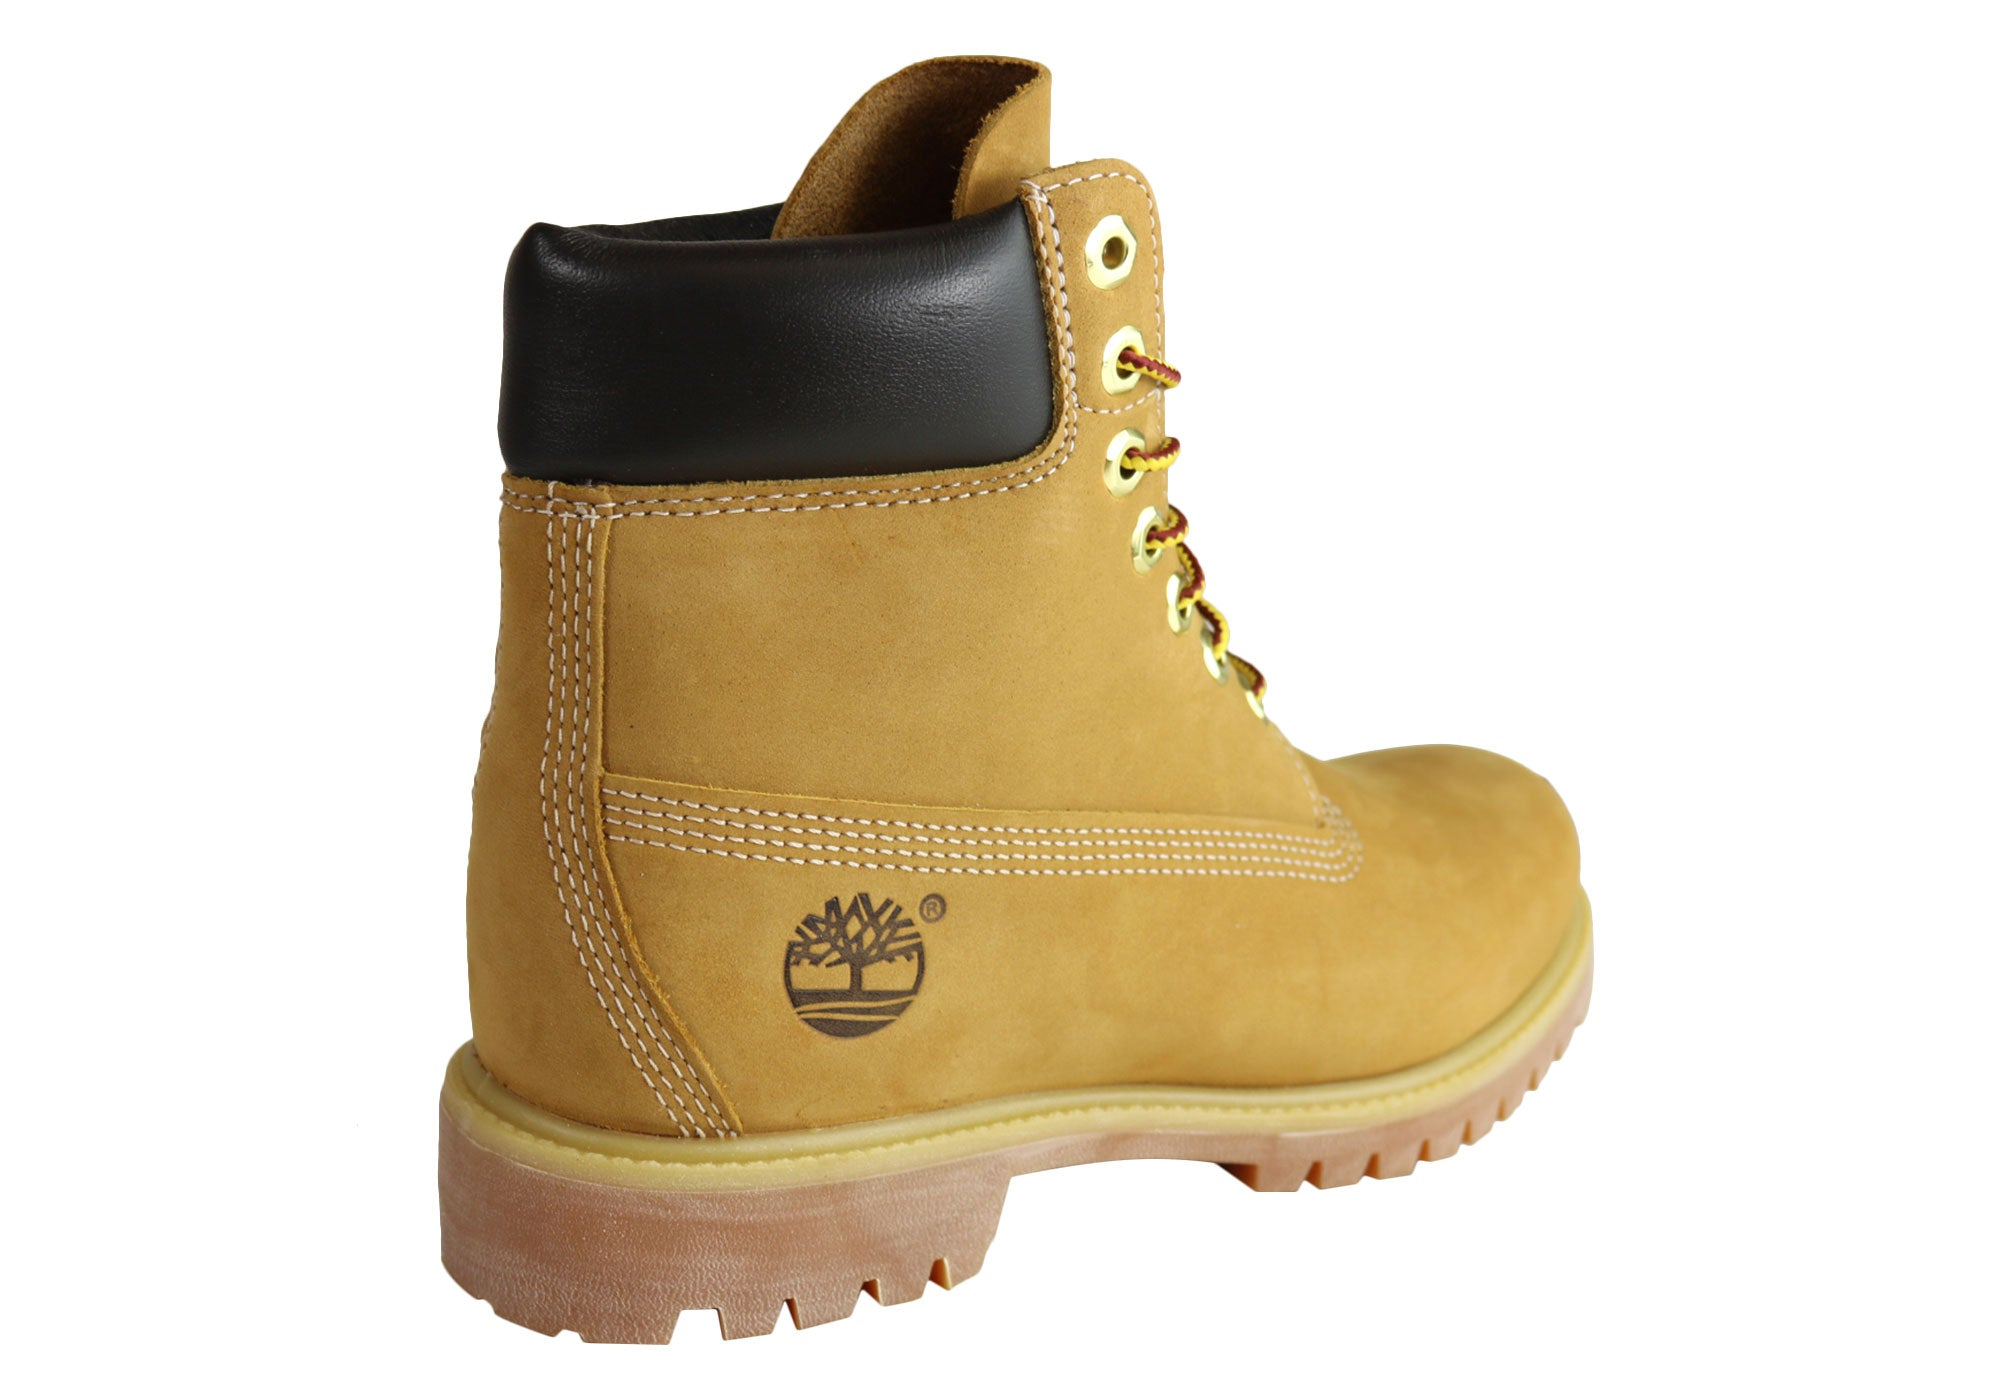 NEW-TIMBERLAND-MENS-COMFORTABLE-LACE-UP-6-INCH-PREMIUM-WATERPROOF-BOOTS thumbnail 9